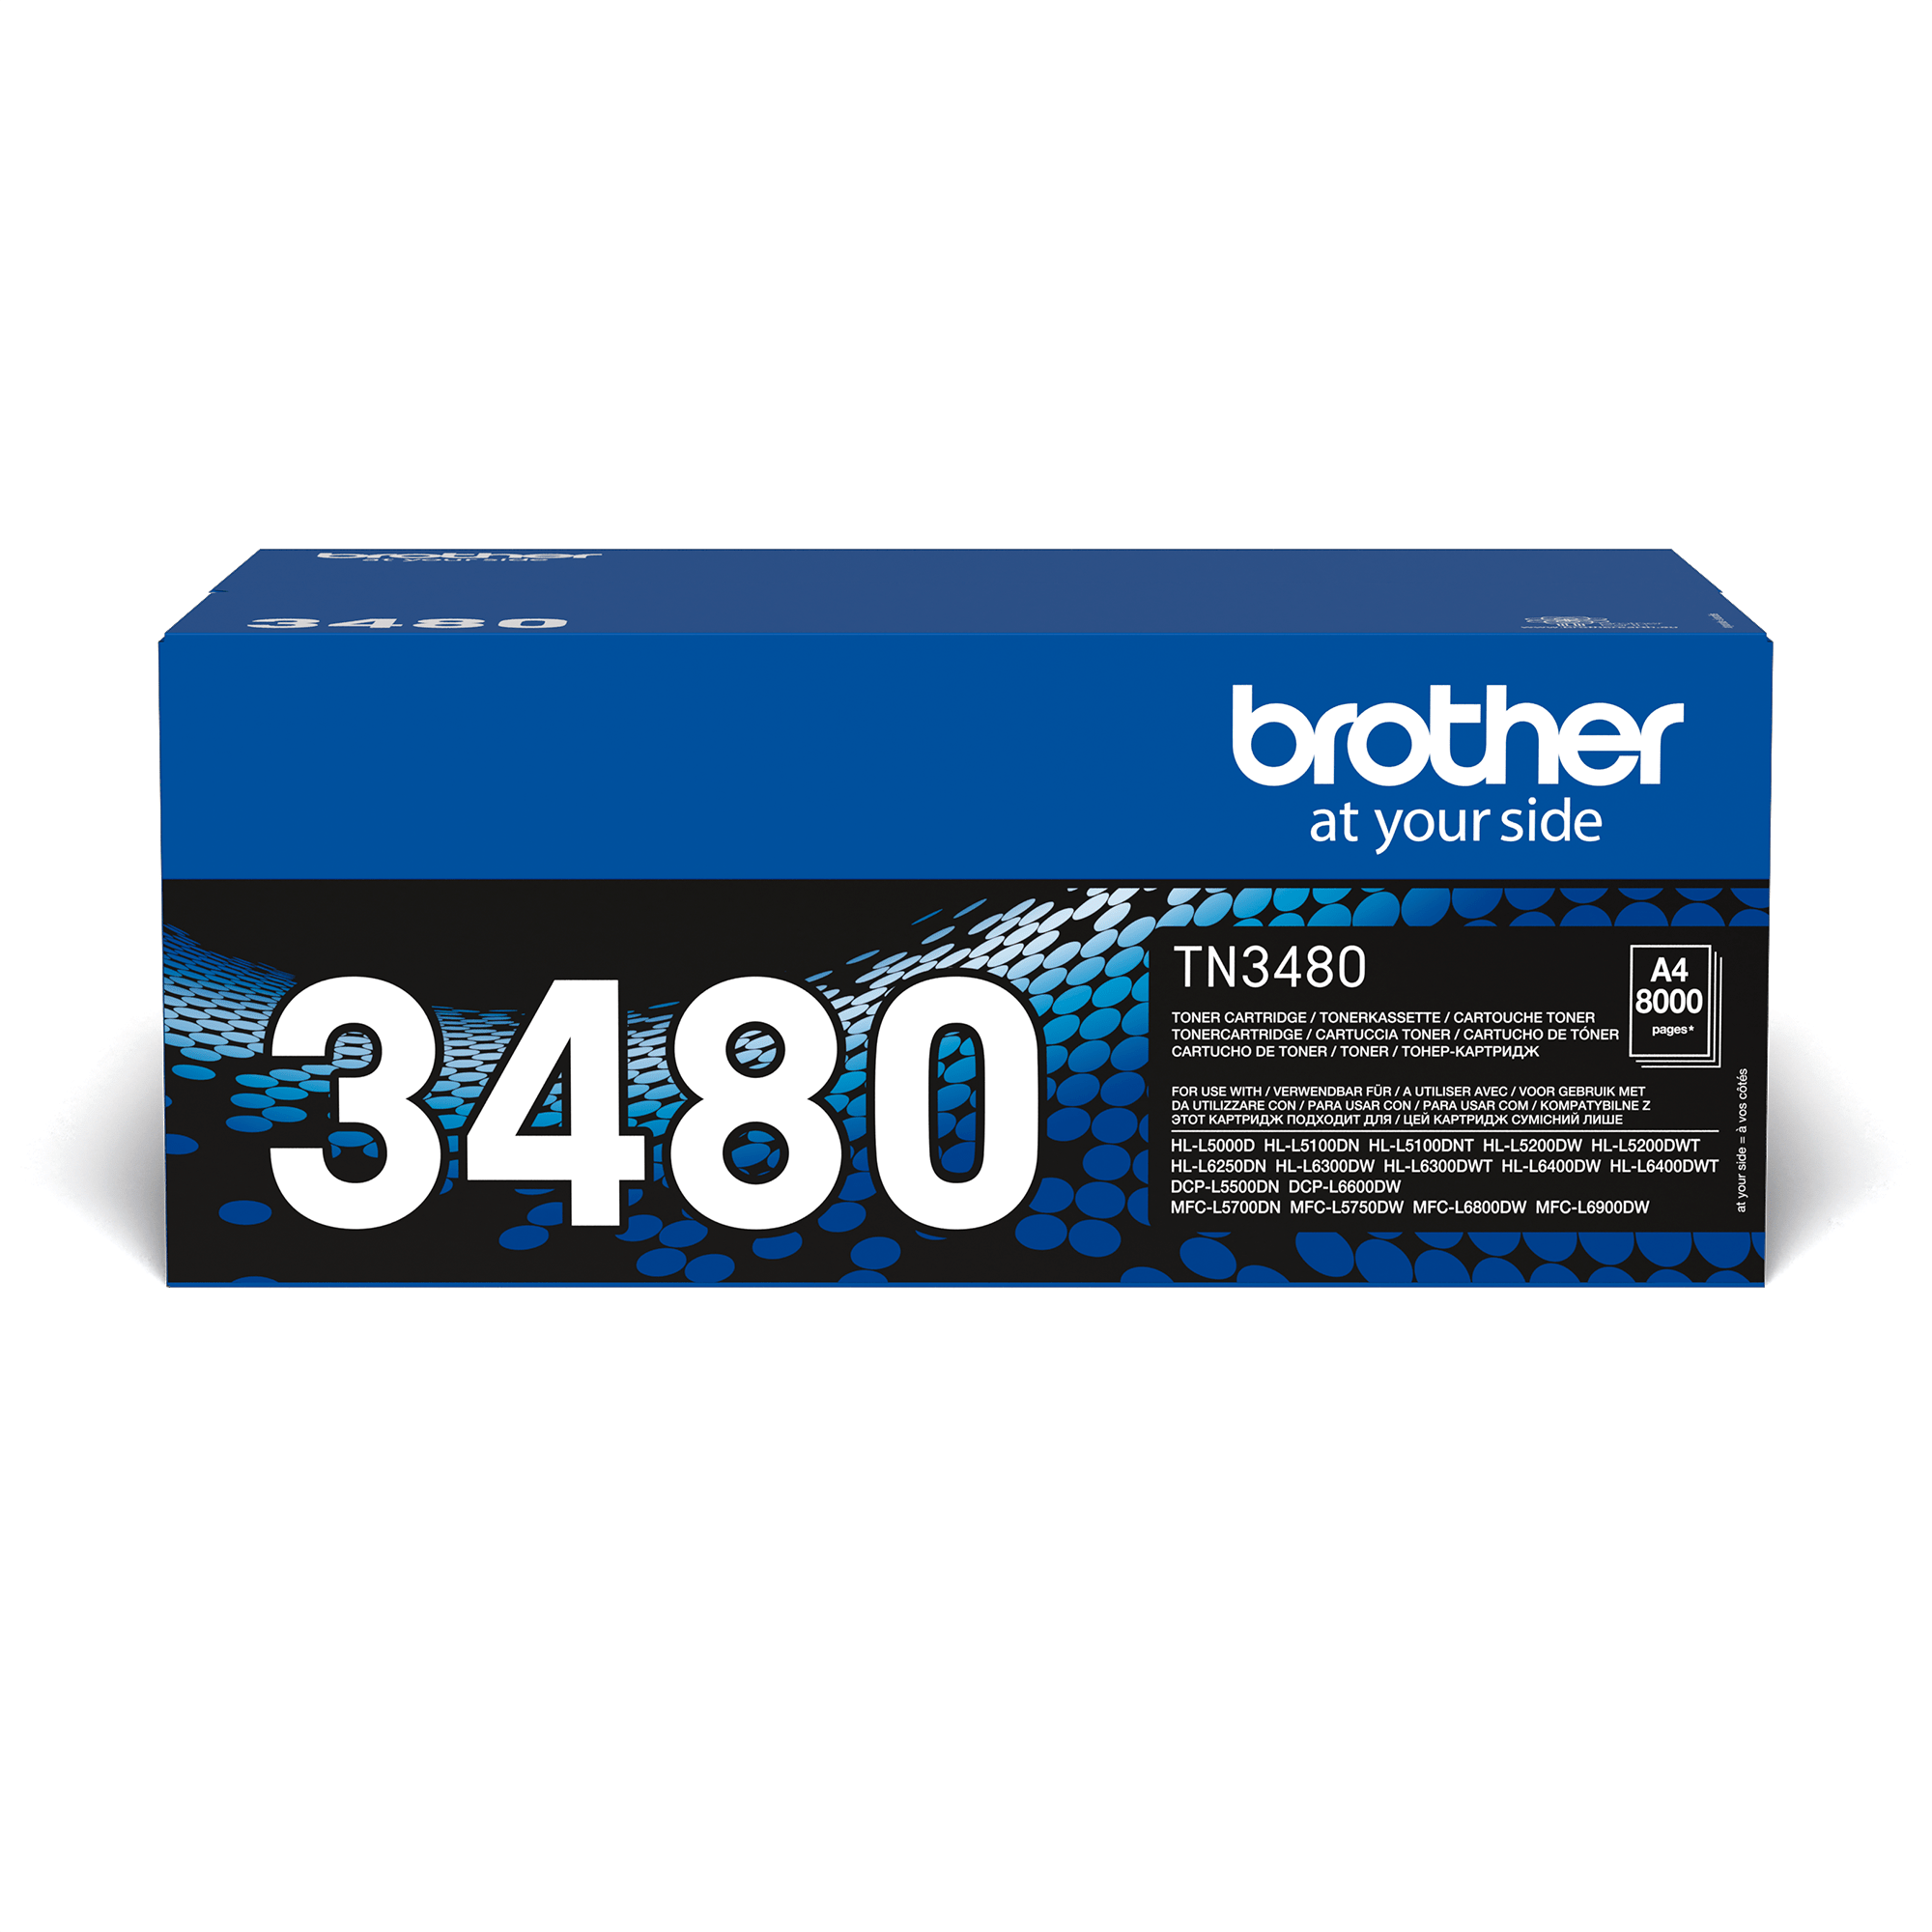 Cartouche de toner TN-3480 Brother originale – Noir